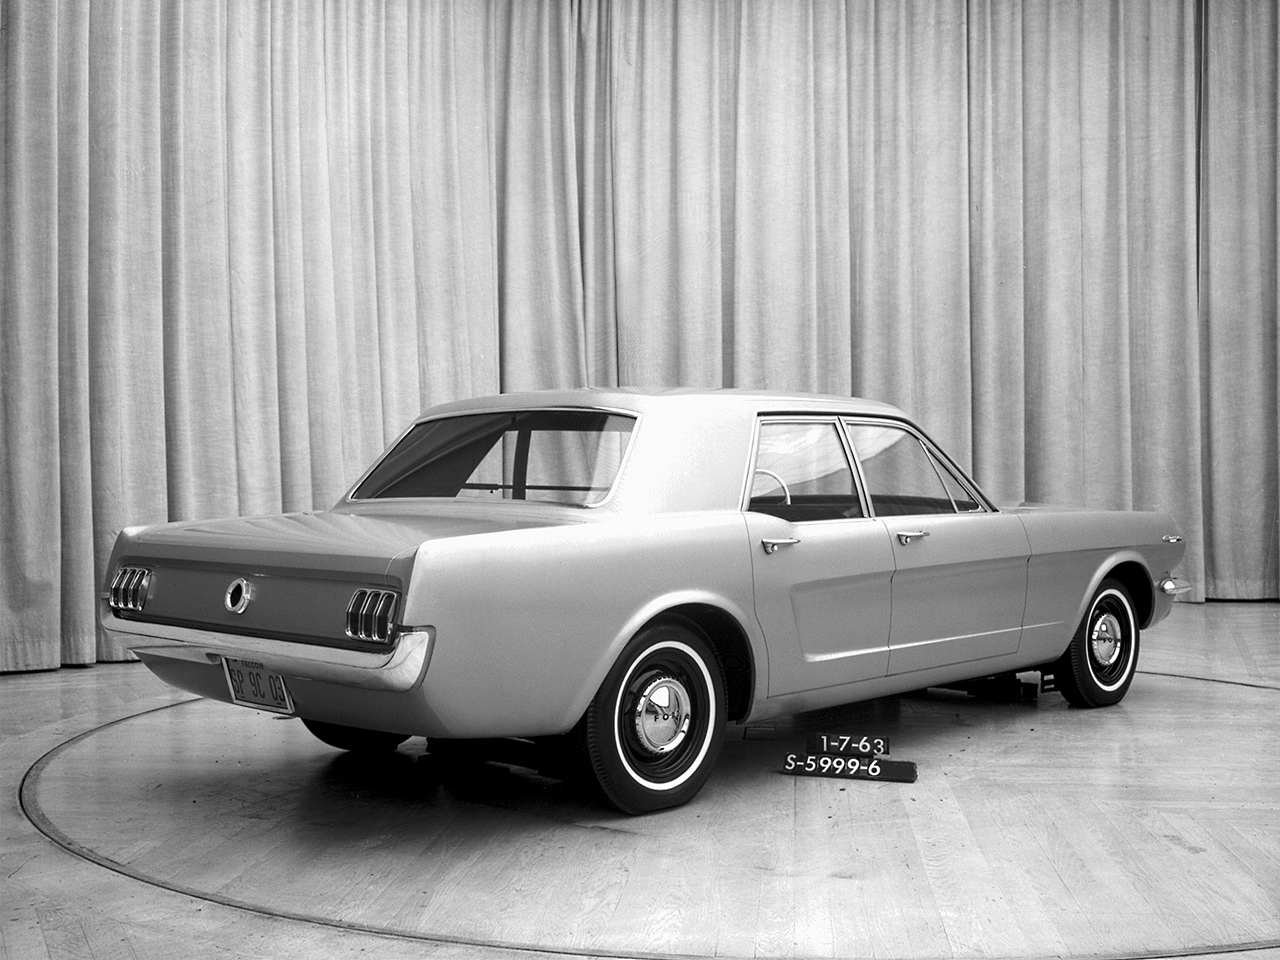 Ford Mustang prototypy